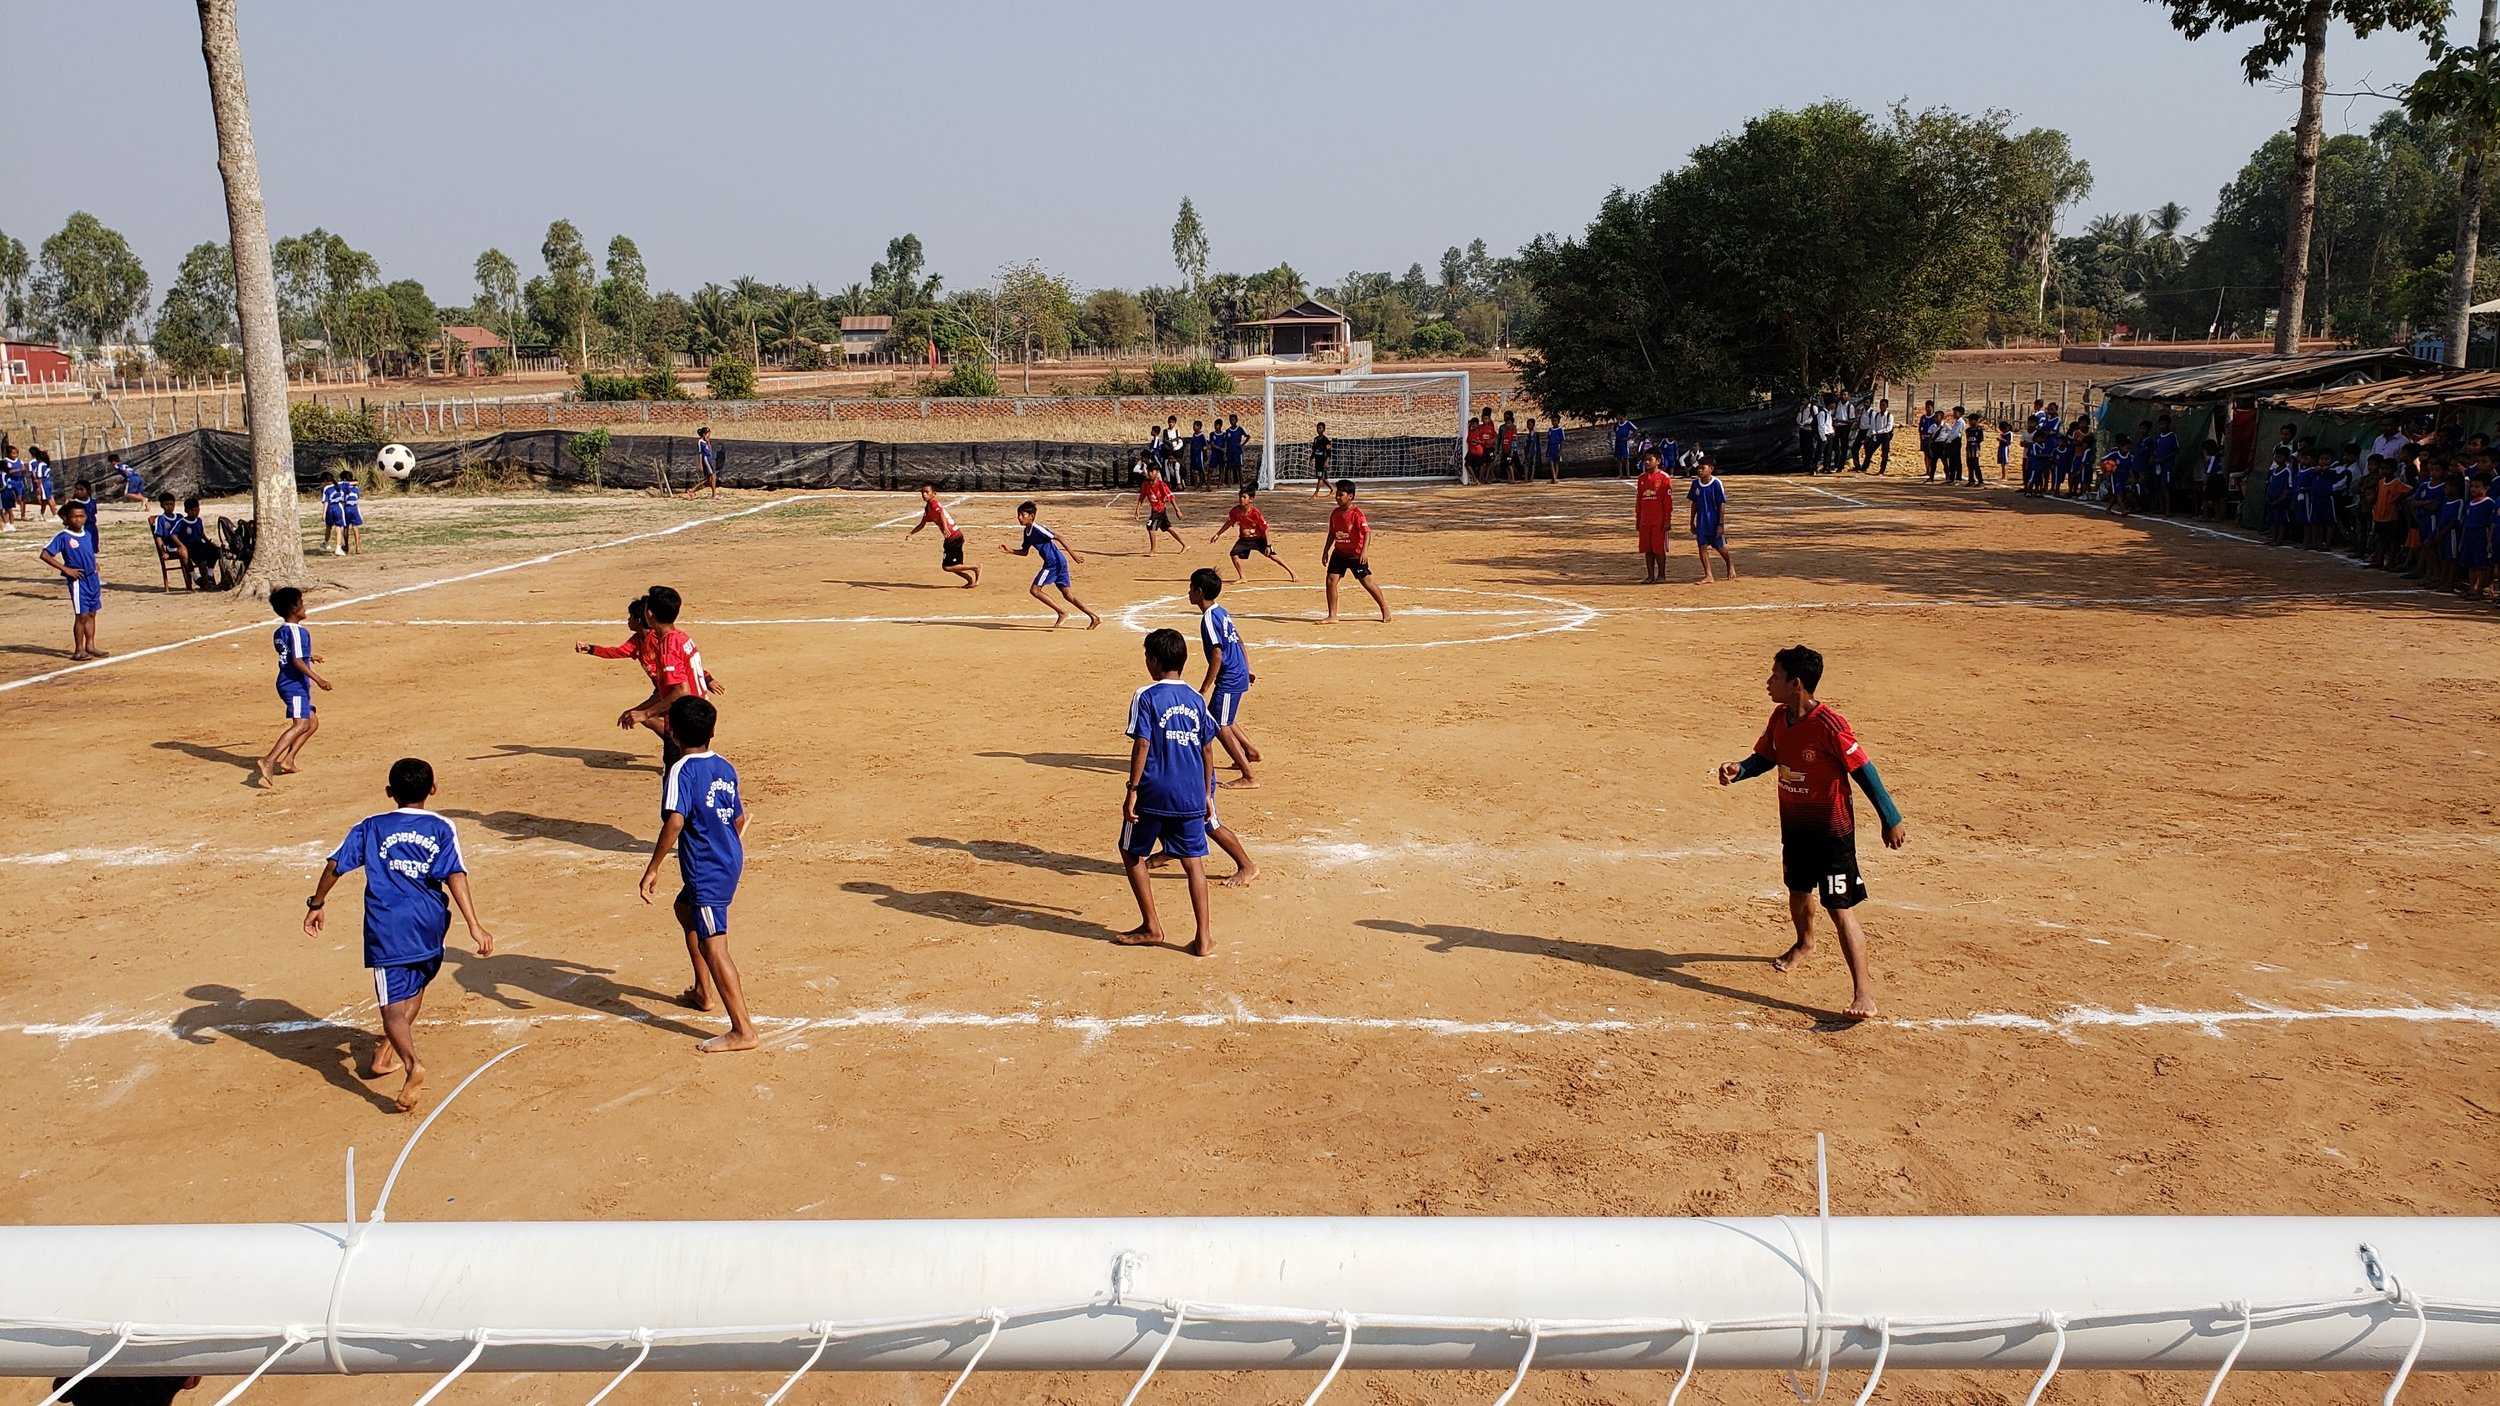 Soccer Field & Volleyball Court - Cambodia